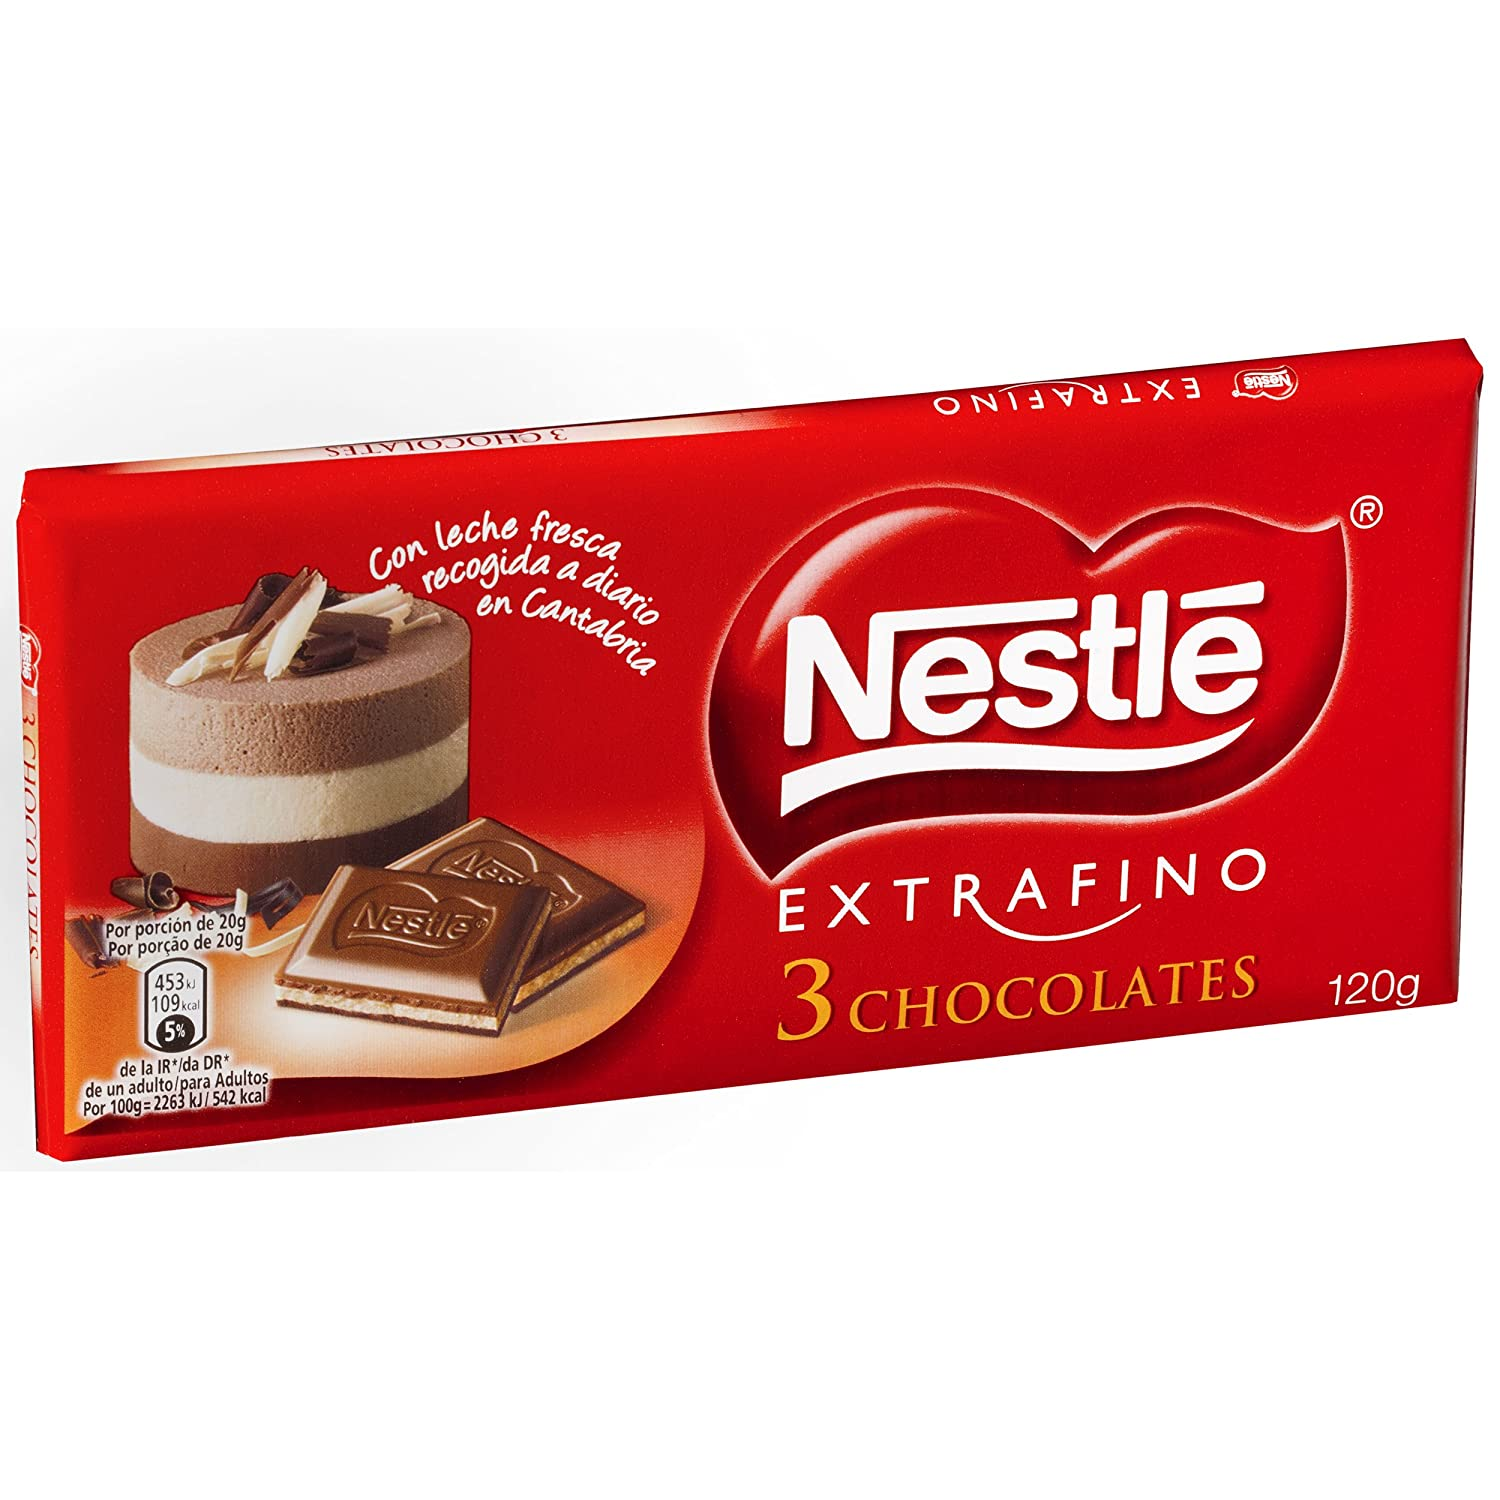 Nestlé Extrafino 3 Chocolates Chocolate Blanco Negro y con Leche - Tableta de Chocolate: Amazon.es: Amazon Pantry